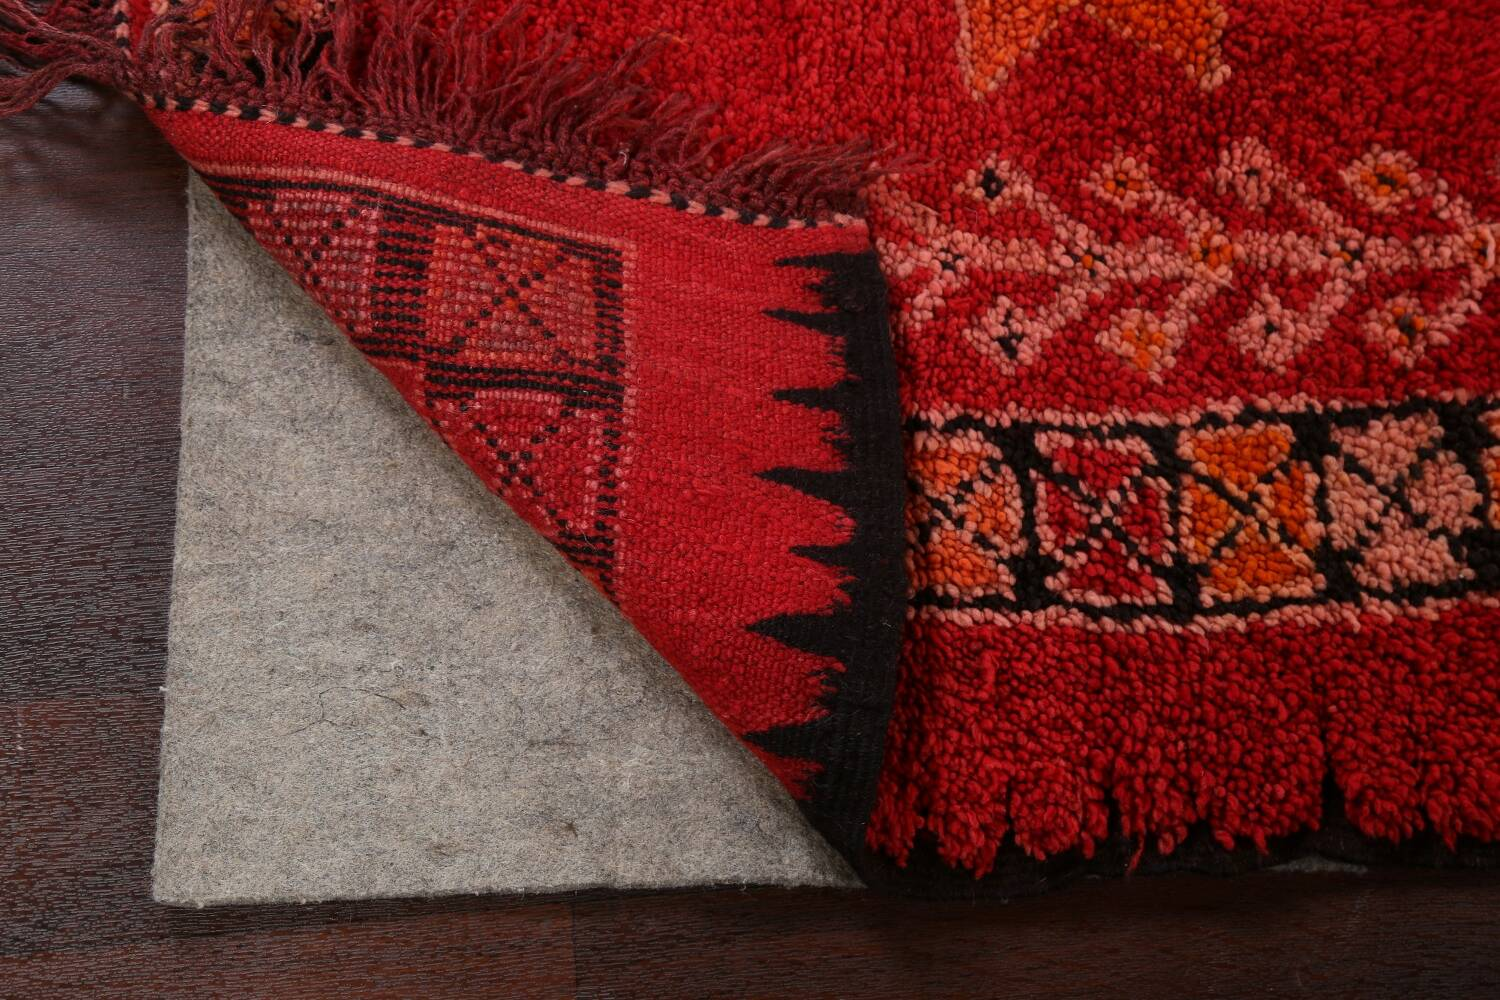 Red Moroccan Berber Area Rug 6x11 image 7